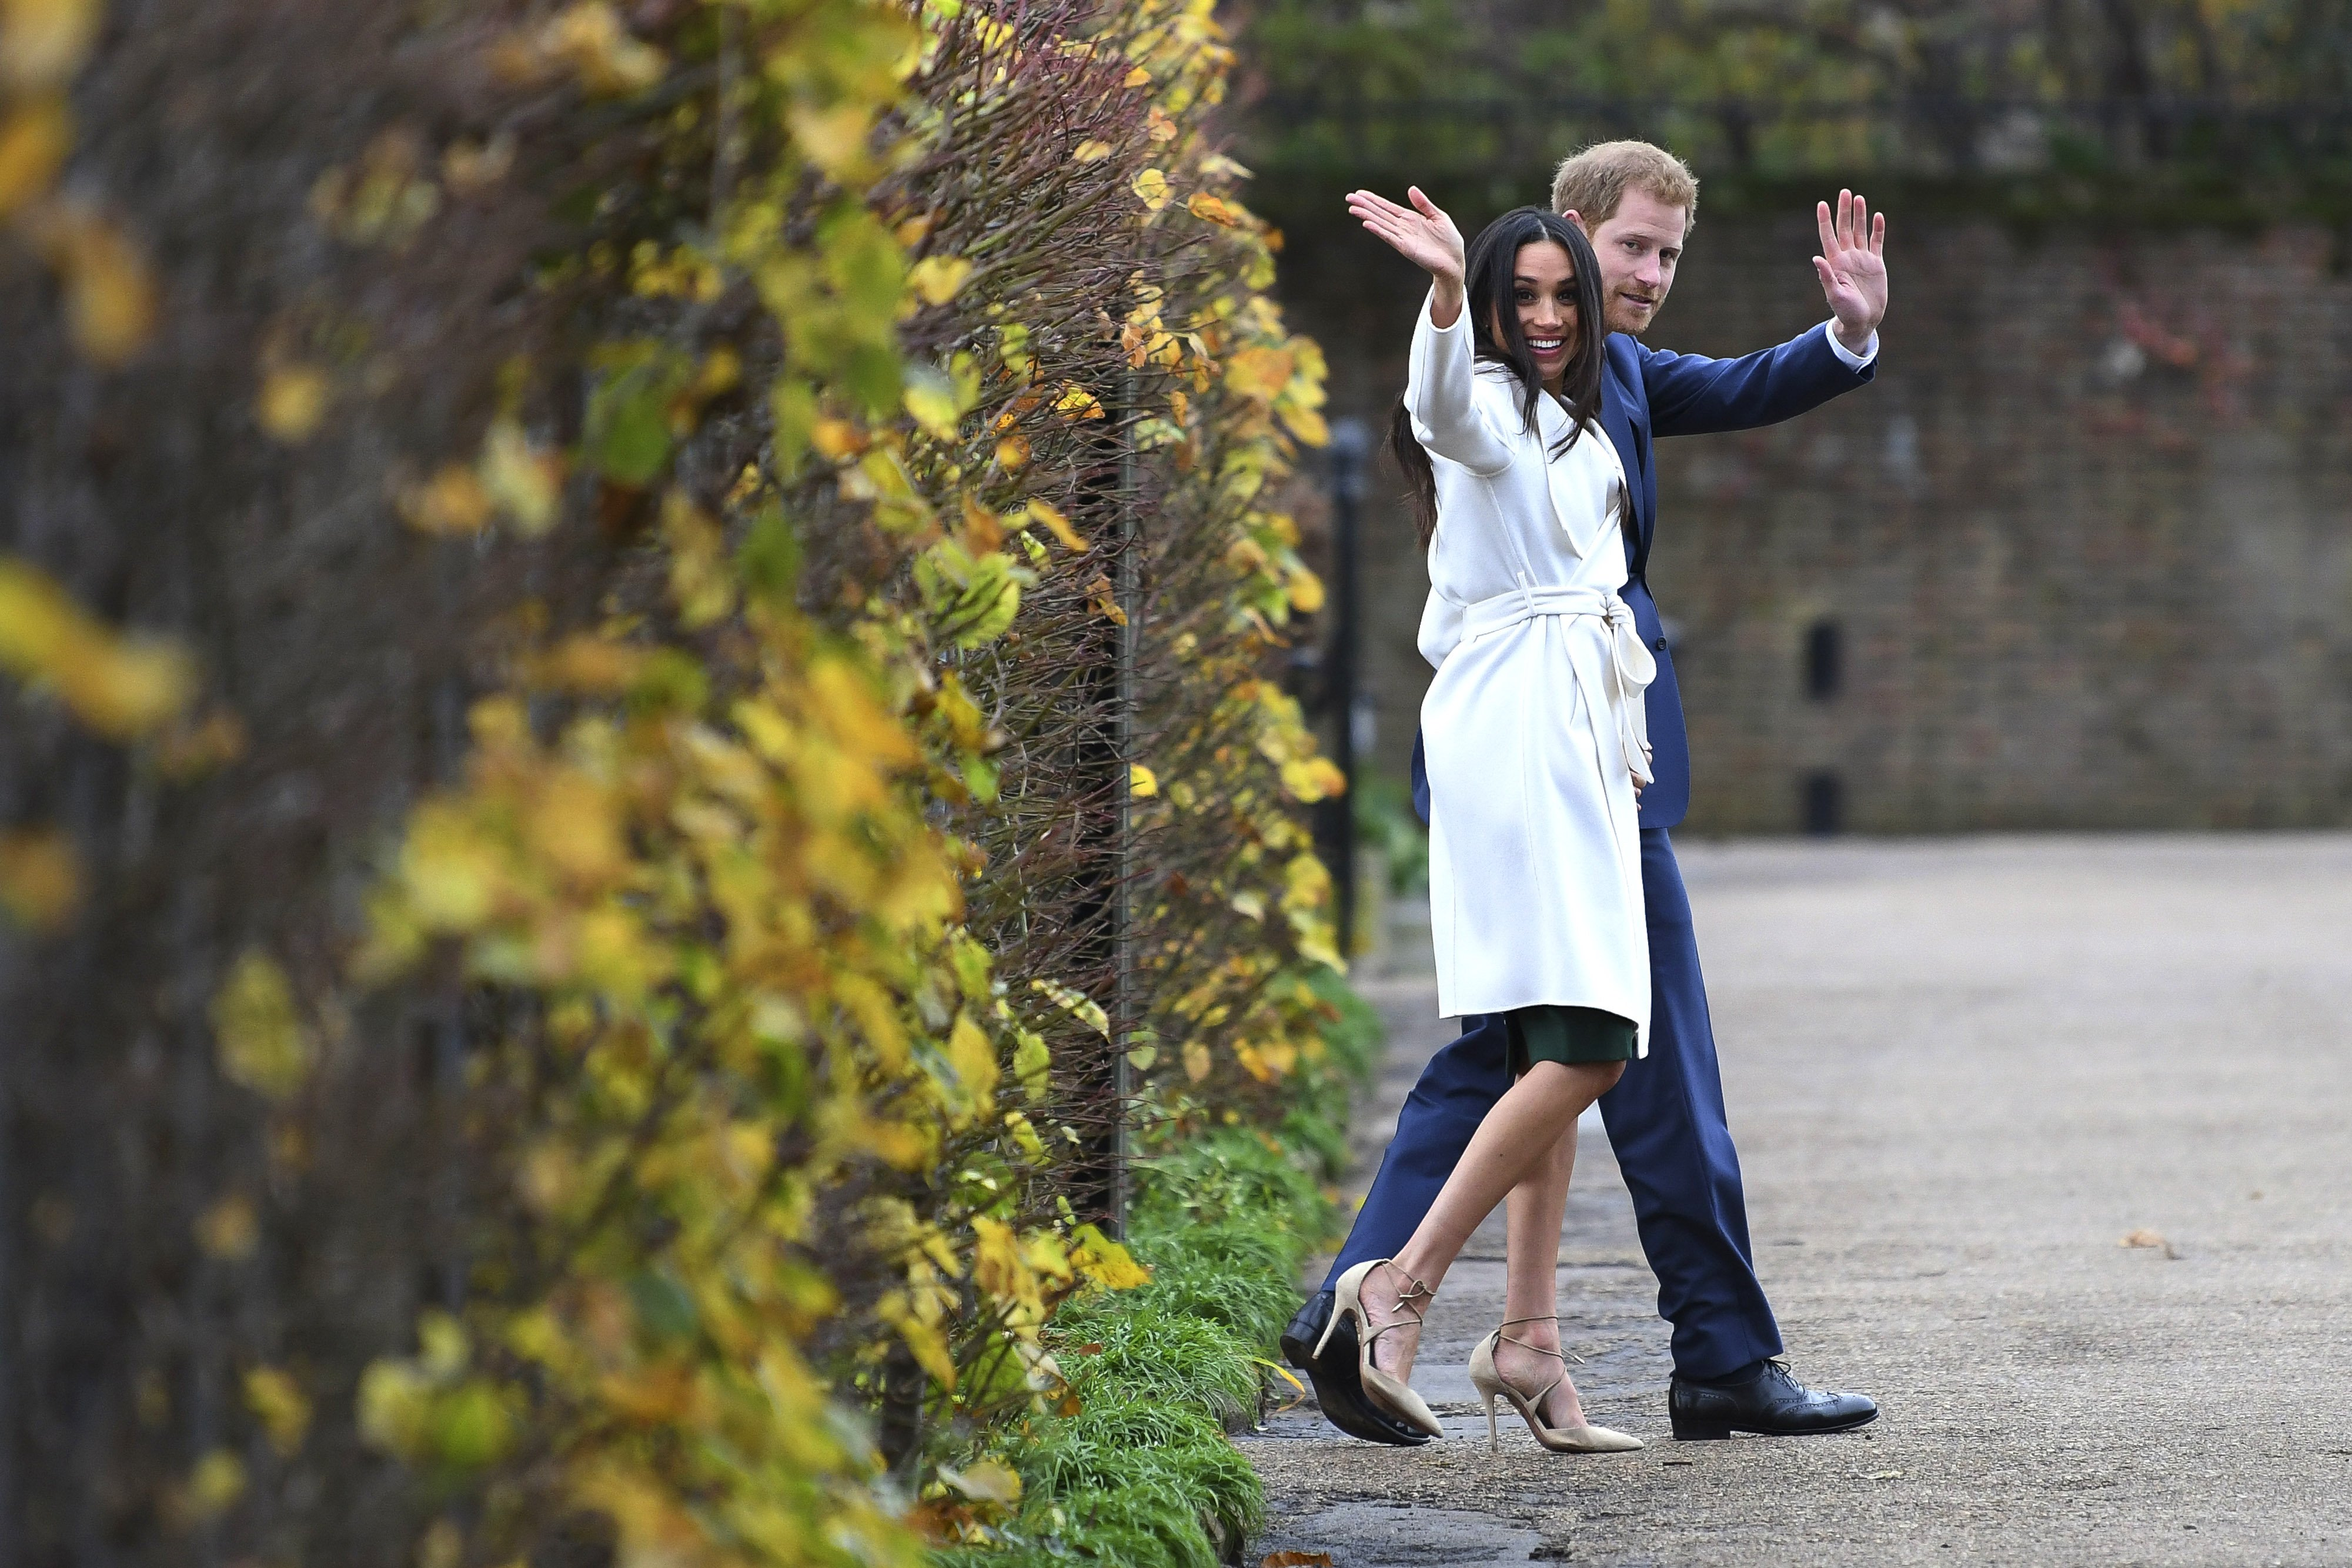 Prince Harry and Meghan Markle attend an official photocall to announce their engagement at The Sunken Gardens at Kensington Palace on November 27, 2017 in London, England   Photo: Getty Images